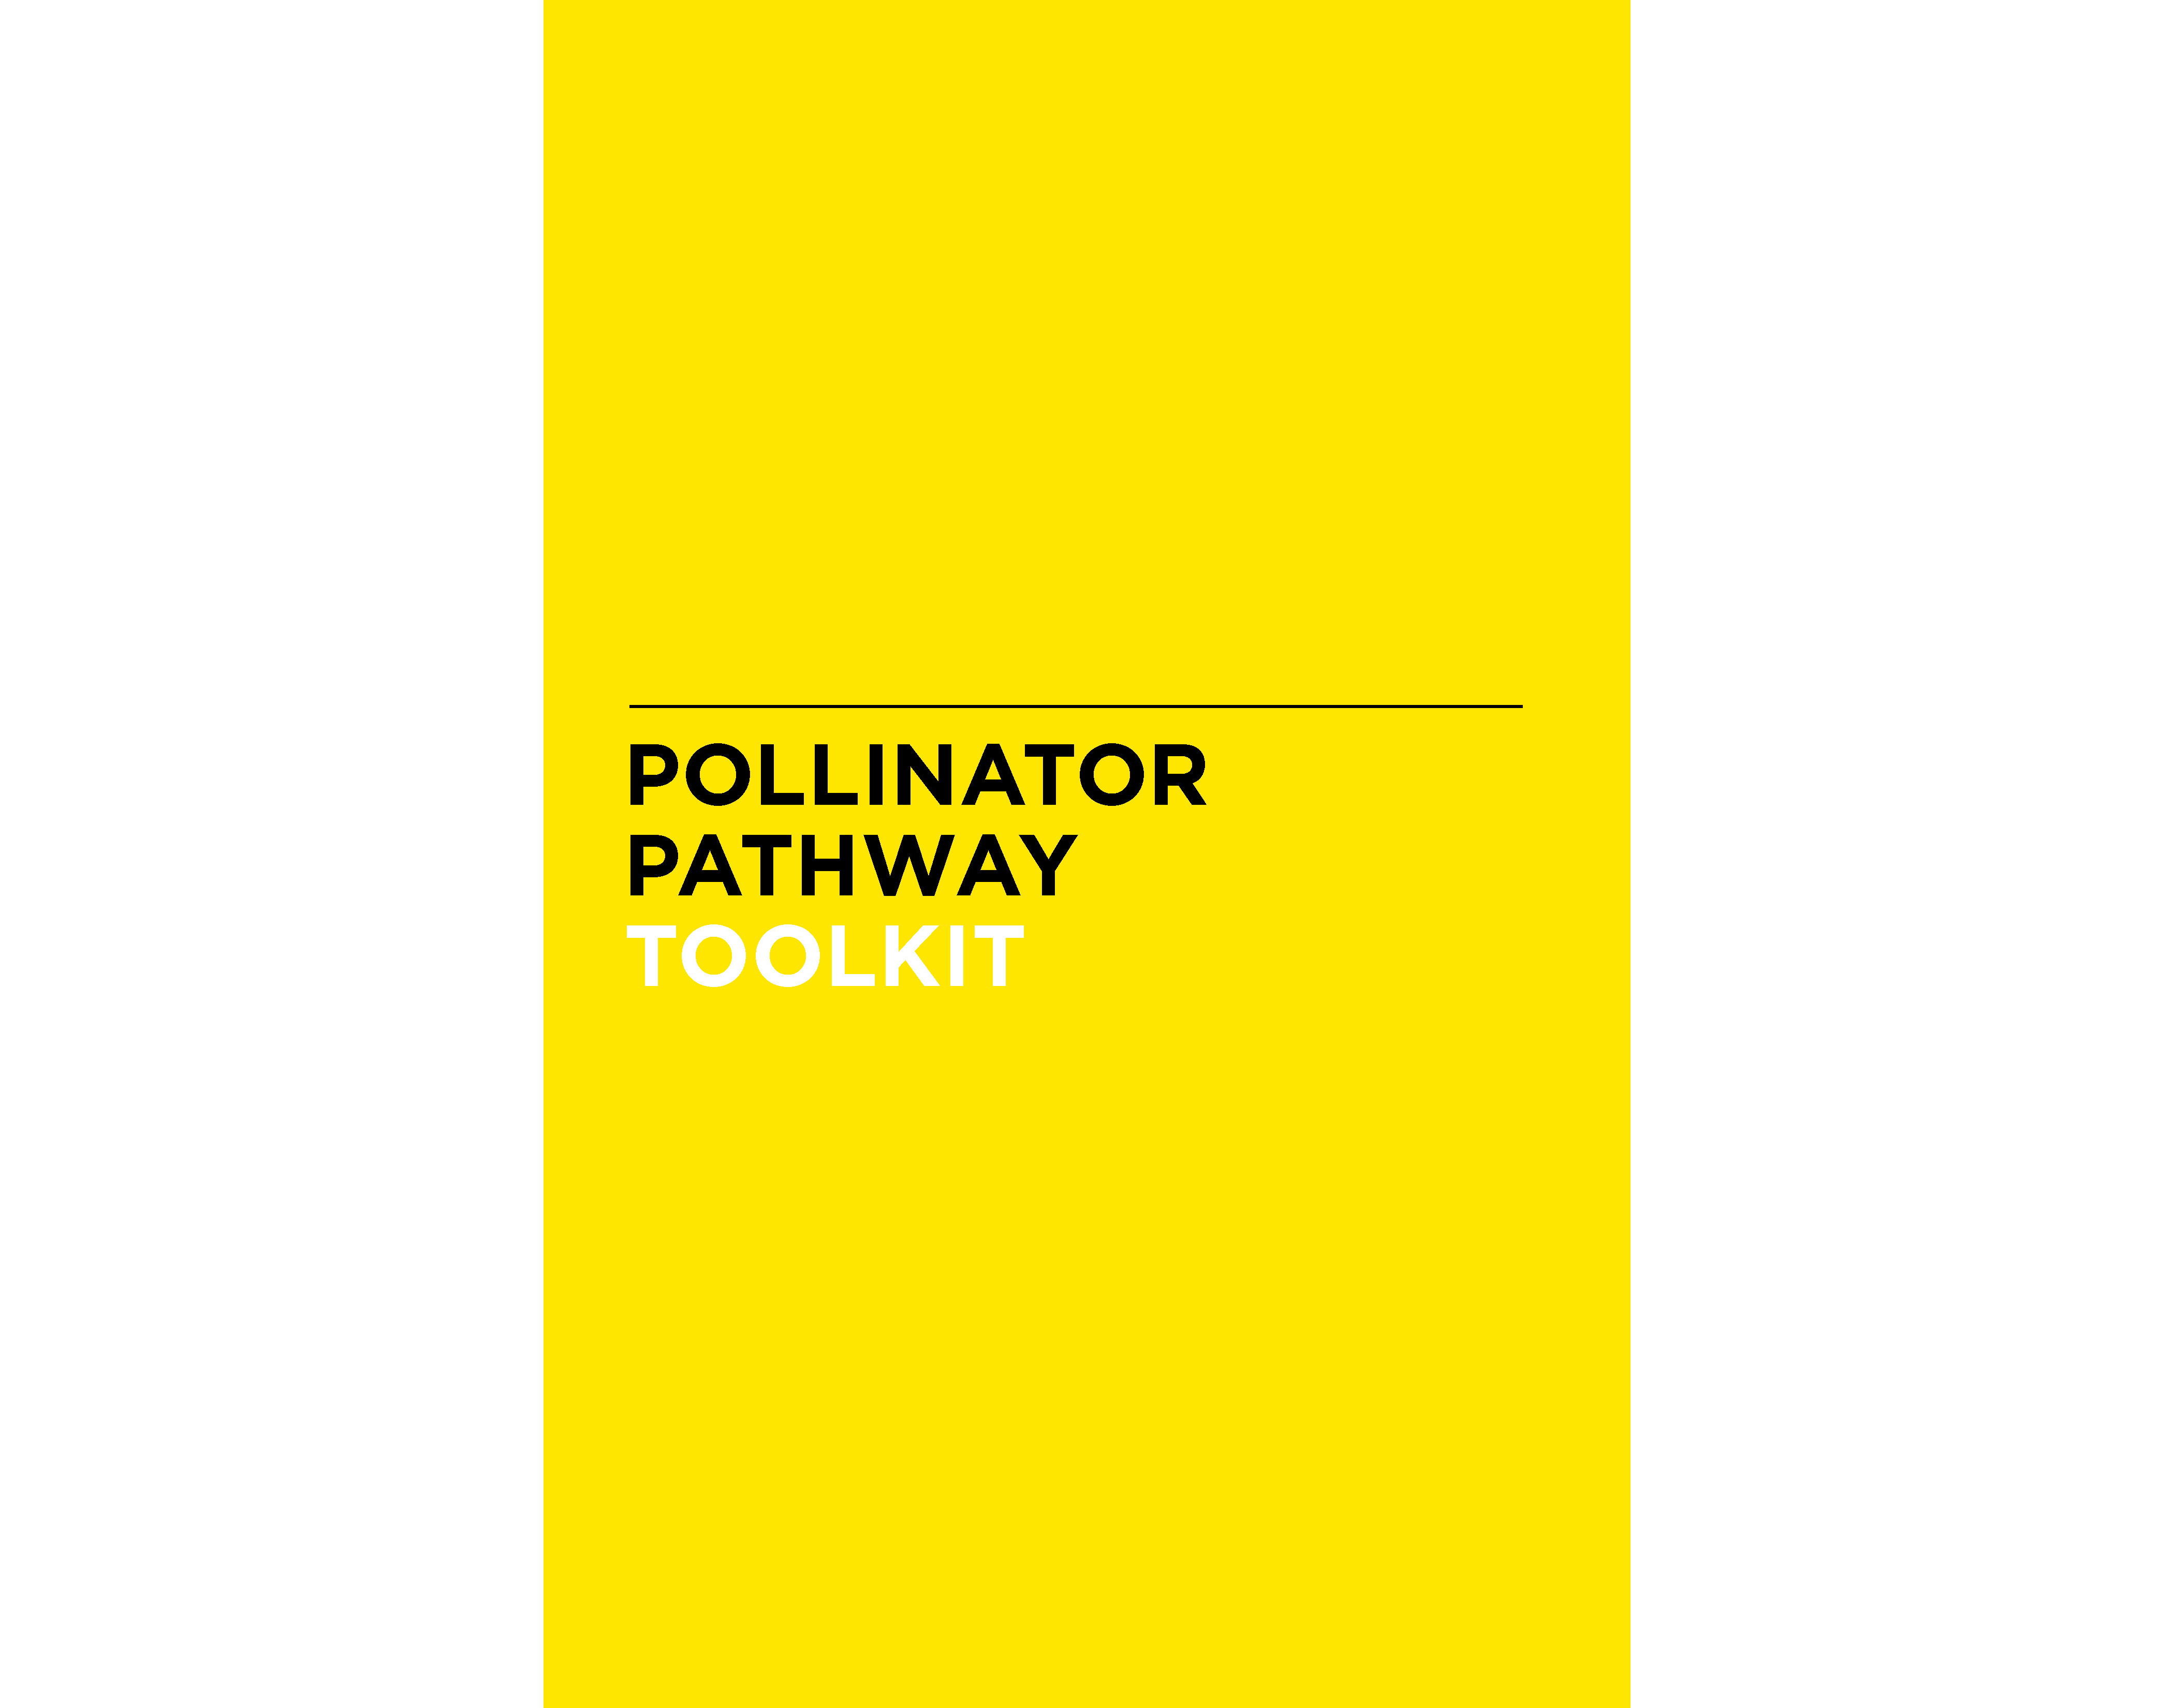 POLLINATOR-PATHWAY-TOOLKIT_Page_1